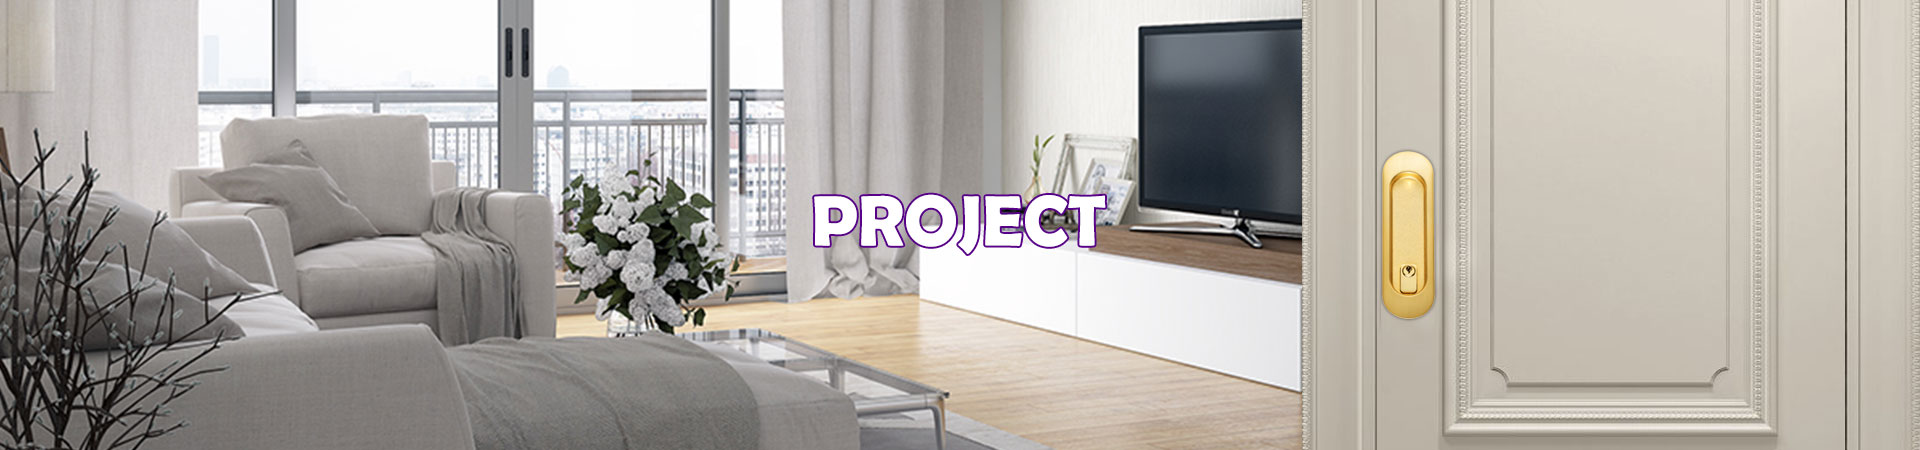 Project banner